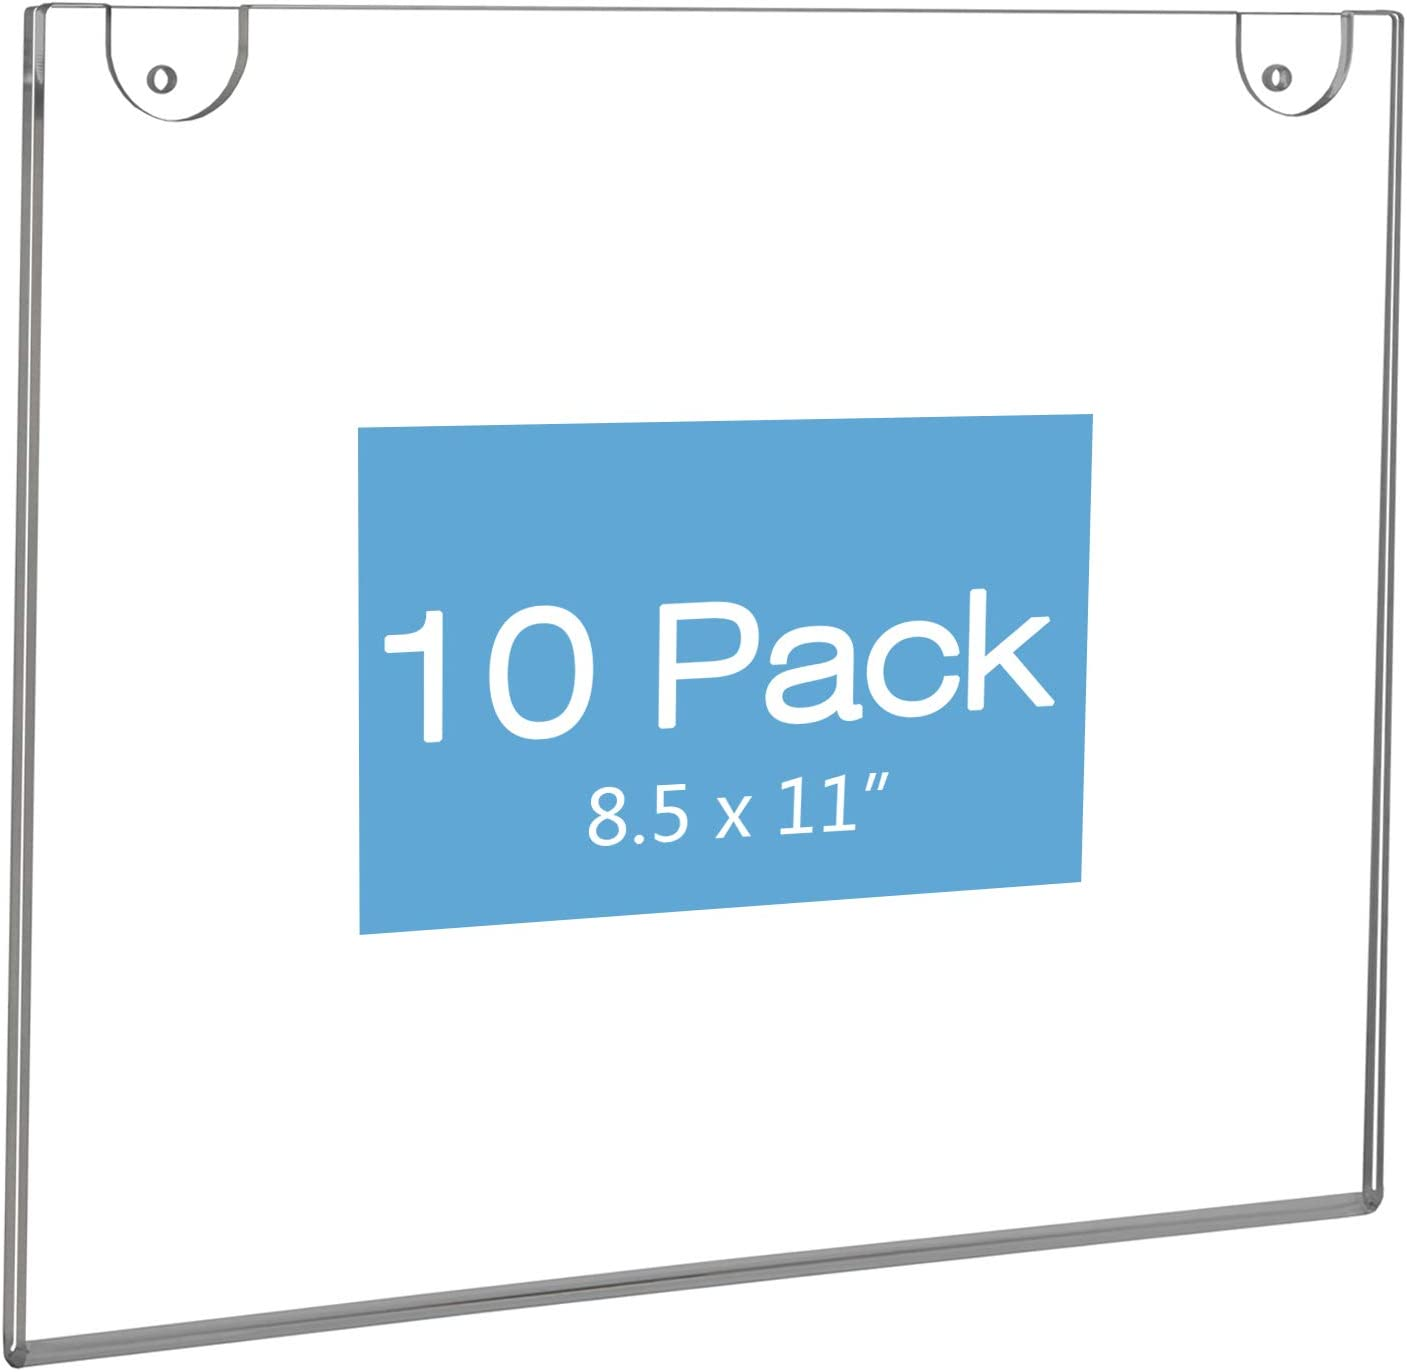 6 Pack Wall Mount Acrylic Sign Holder 8.5 x 11 Display Frame for Office Restaurant Paper Document Signs Menu Poster,8.5x11 Clear Acrylic Sign Holder Vertical AD Frame Adhesive Screws Included